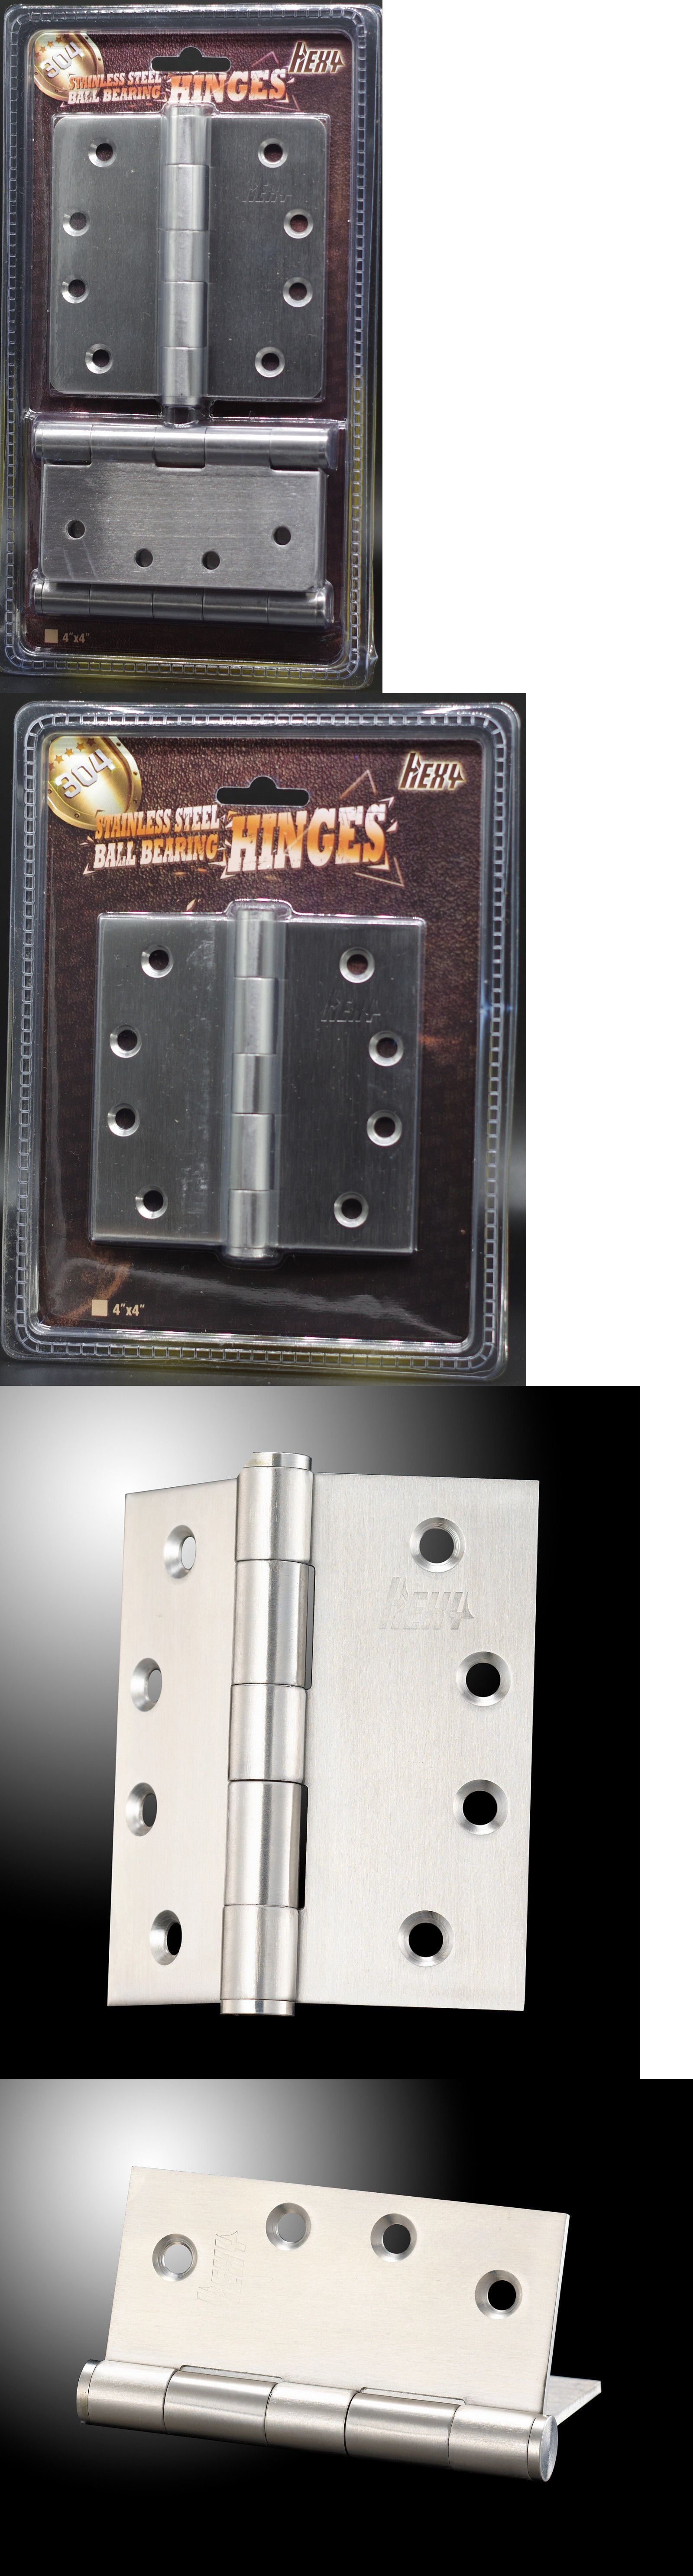 Stainless Steel 304 Continuous Hinge with Hole 2 Open Width Pack of 1 5//64 Pin Diameter 1//2 Knuckle Length 8 Long Bright Annealed Finish 0.04 Leaf Thickness